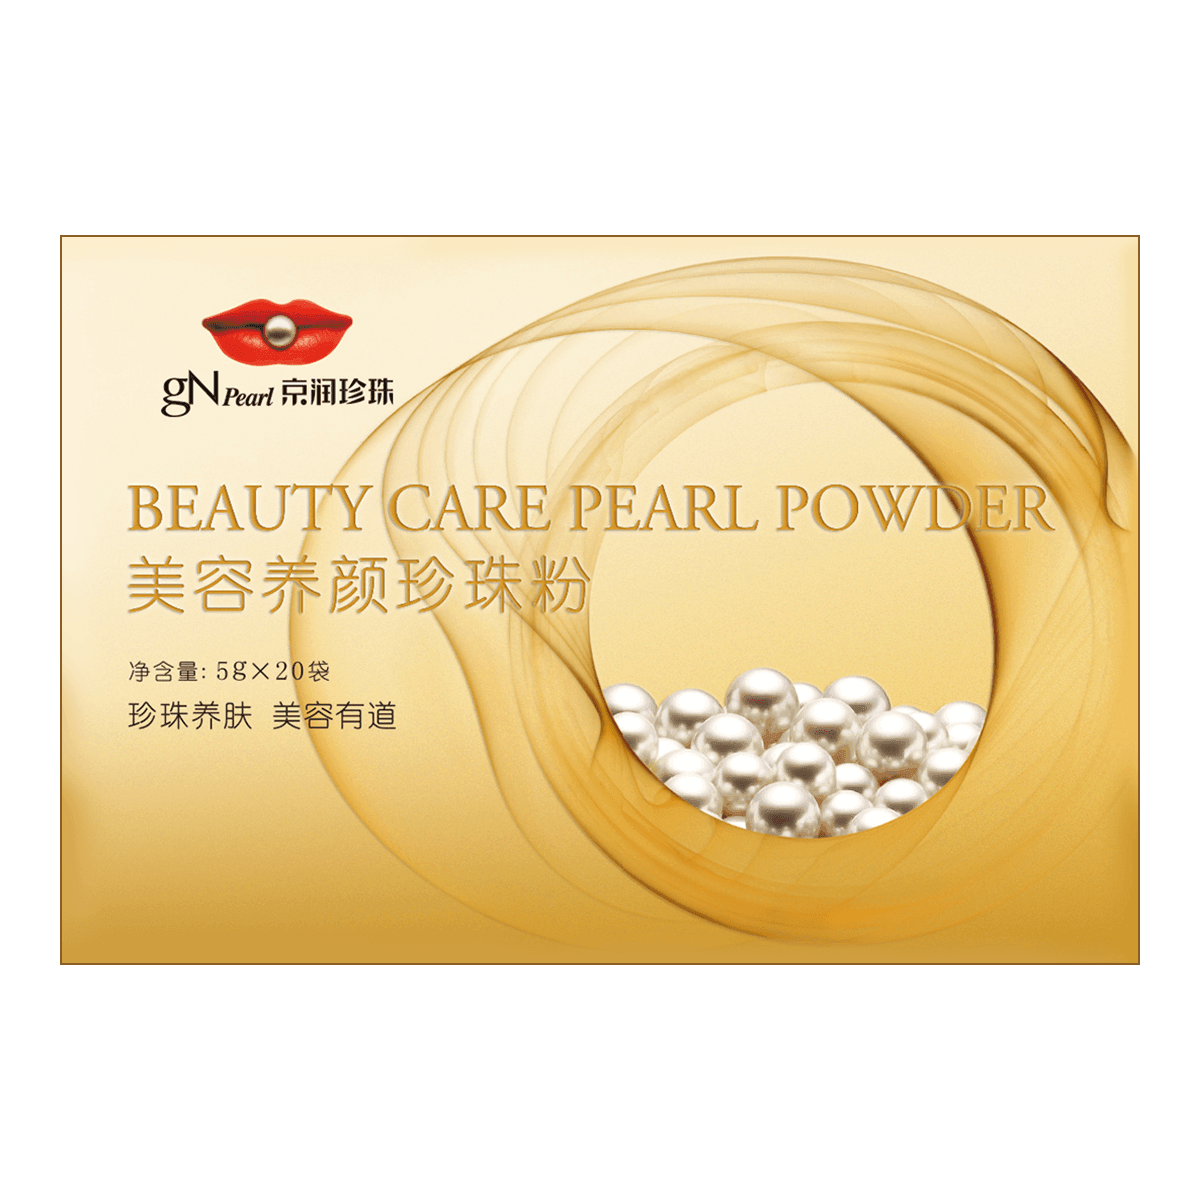 GN pearl beauty care pearl powder 5g*20